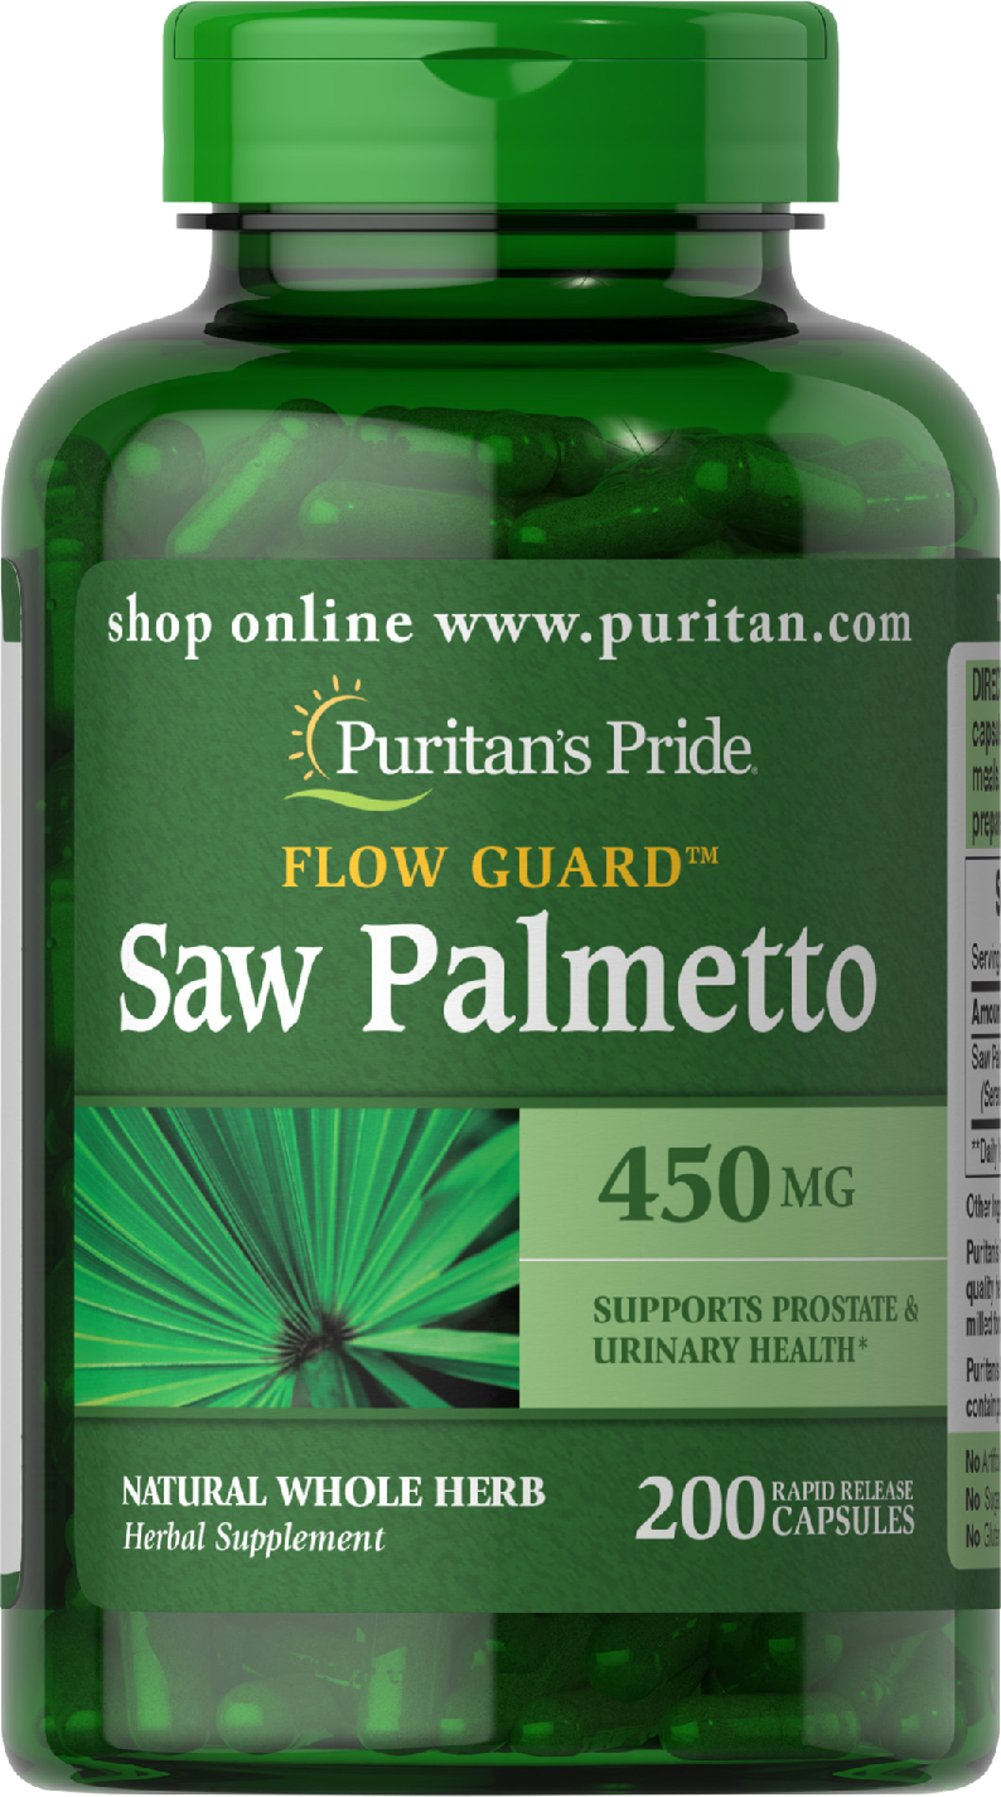 Saw Palmetto 450 mg <p>Men the world over are discovering the beneficial properties of Saw Palmetto. Saw Palmetto, derived from the berry of the Saw Palmetto tree, is the leading herb for men's health.** Saw Palmetto has traditionally been used to support prostate and urinary health in men.**</p><p>Our Saw Palmetto formula is fully assayed and tested. This means that you receive a dietary supplement that is superior in purity and quality.</p> 200 Capsules 450 mg $12.73